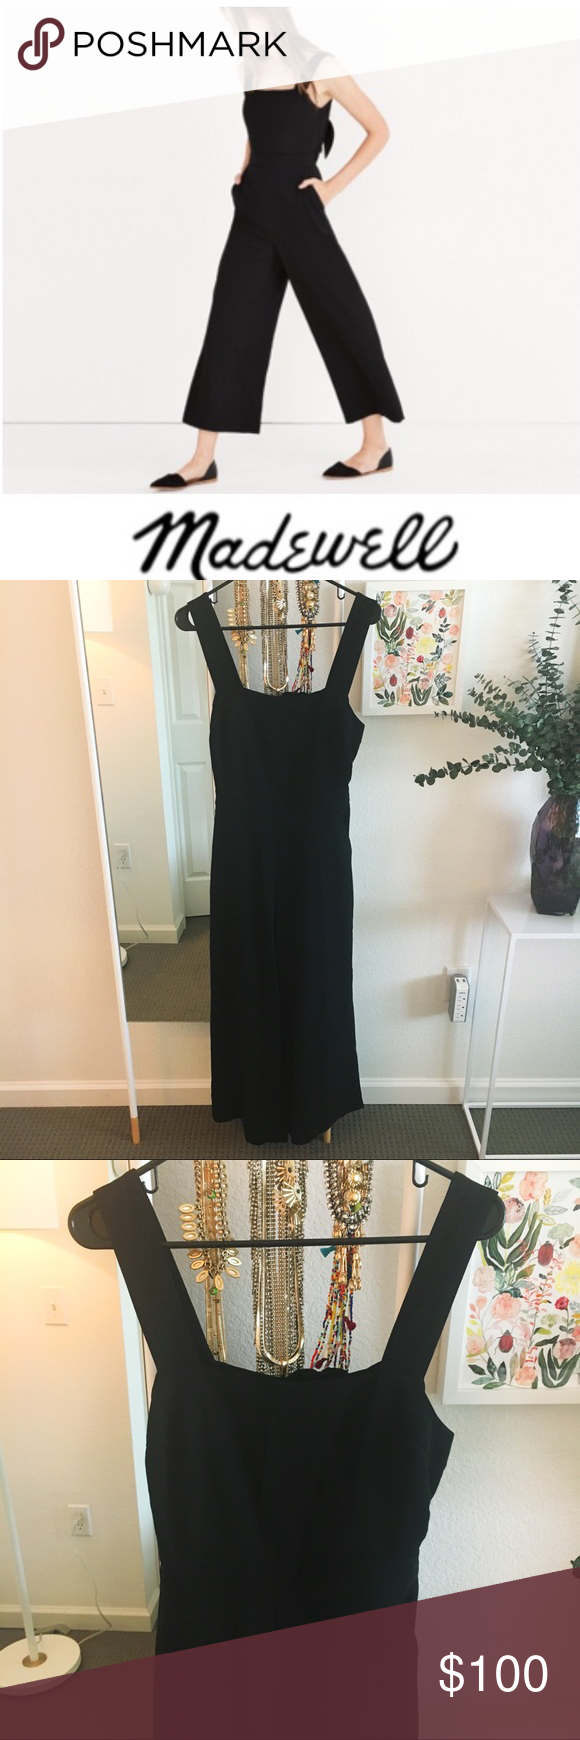 0df6b6295826 Madewell Apron Bow-back Jumpsuit Amazing bow-back black jumpsuit - only  worn once! Pair with black flats and grab your favorite denim jacket for an  adorable ...